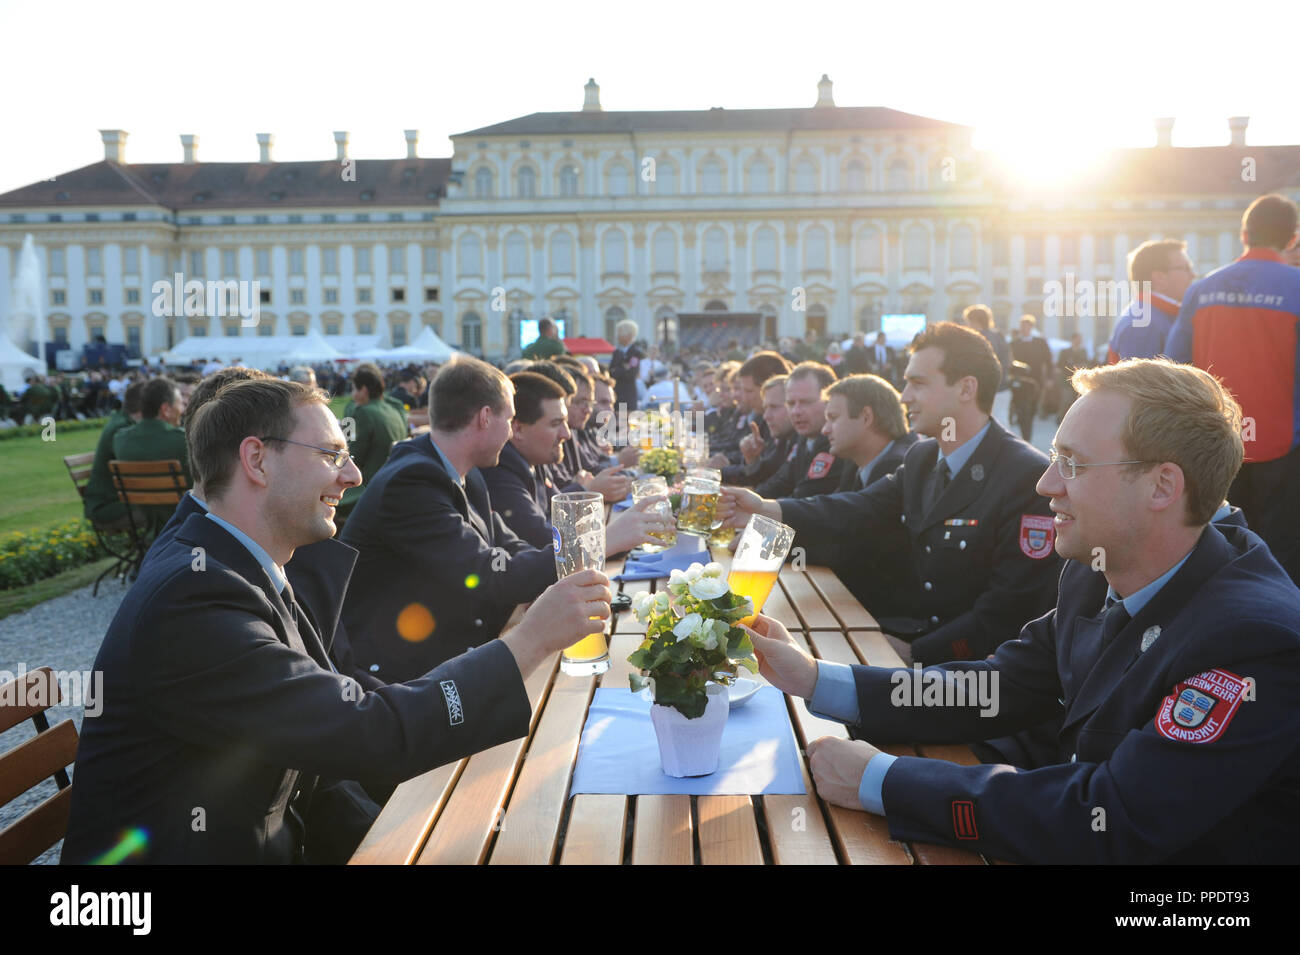 3000 flood helpers are honored by Minister-President Horst Seehofer in the garden of Schleissheim Palace for their help during the flood of the century in Bavaria. - Stock Image